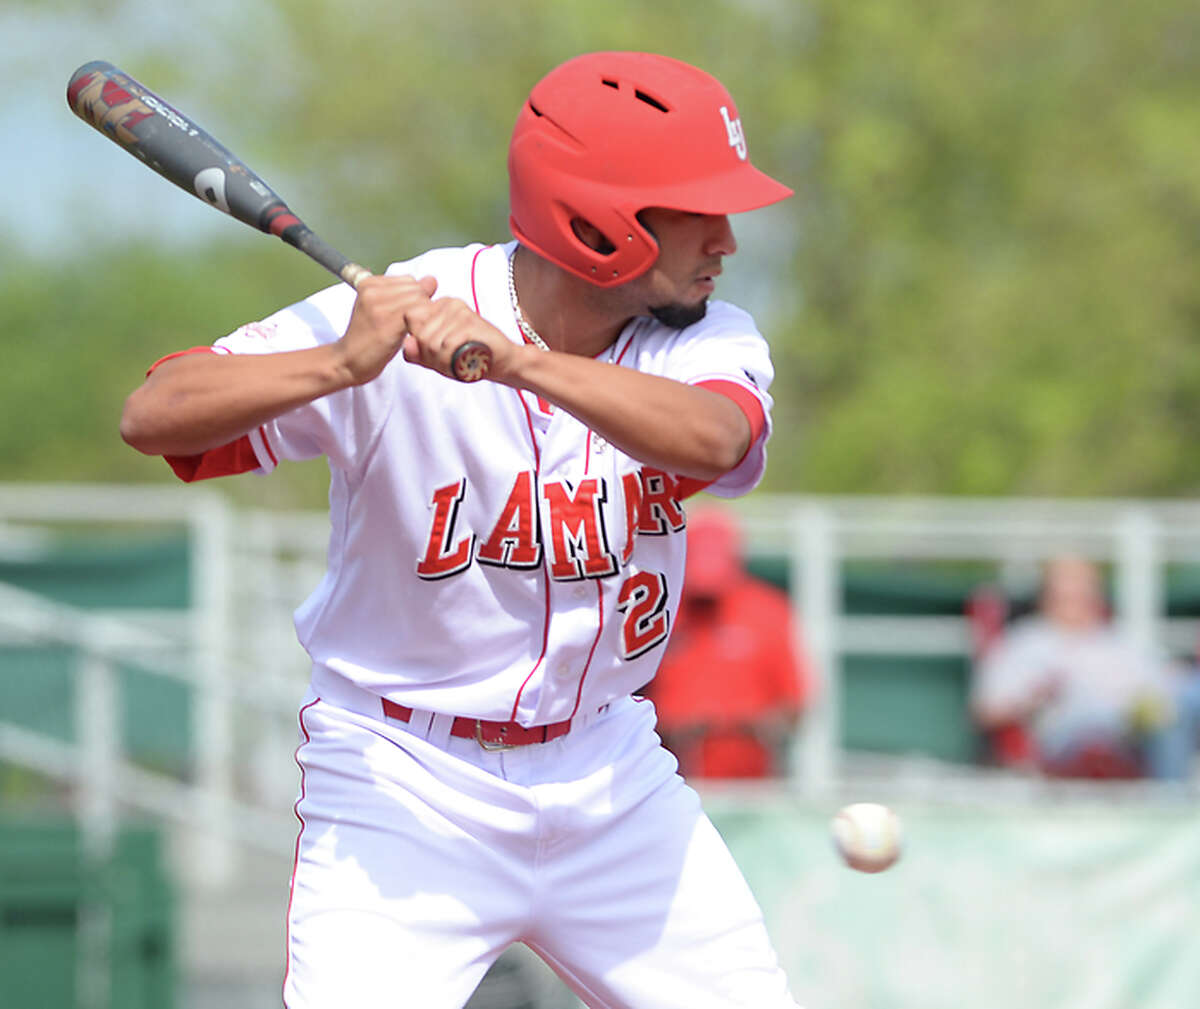 See the opponents Lamar baseball has defeated to attain their nation-best winning streak in the following slides.  Lamar's Gavin Tristan lets the ball pass while taking his turn at bat as the Cardinals battle with Nicholls during their April 6 game.